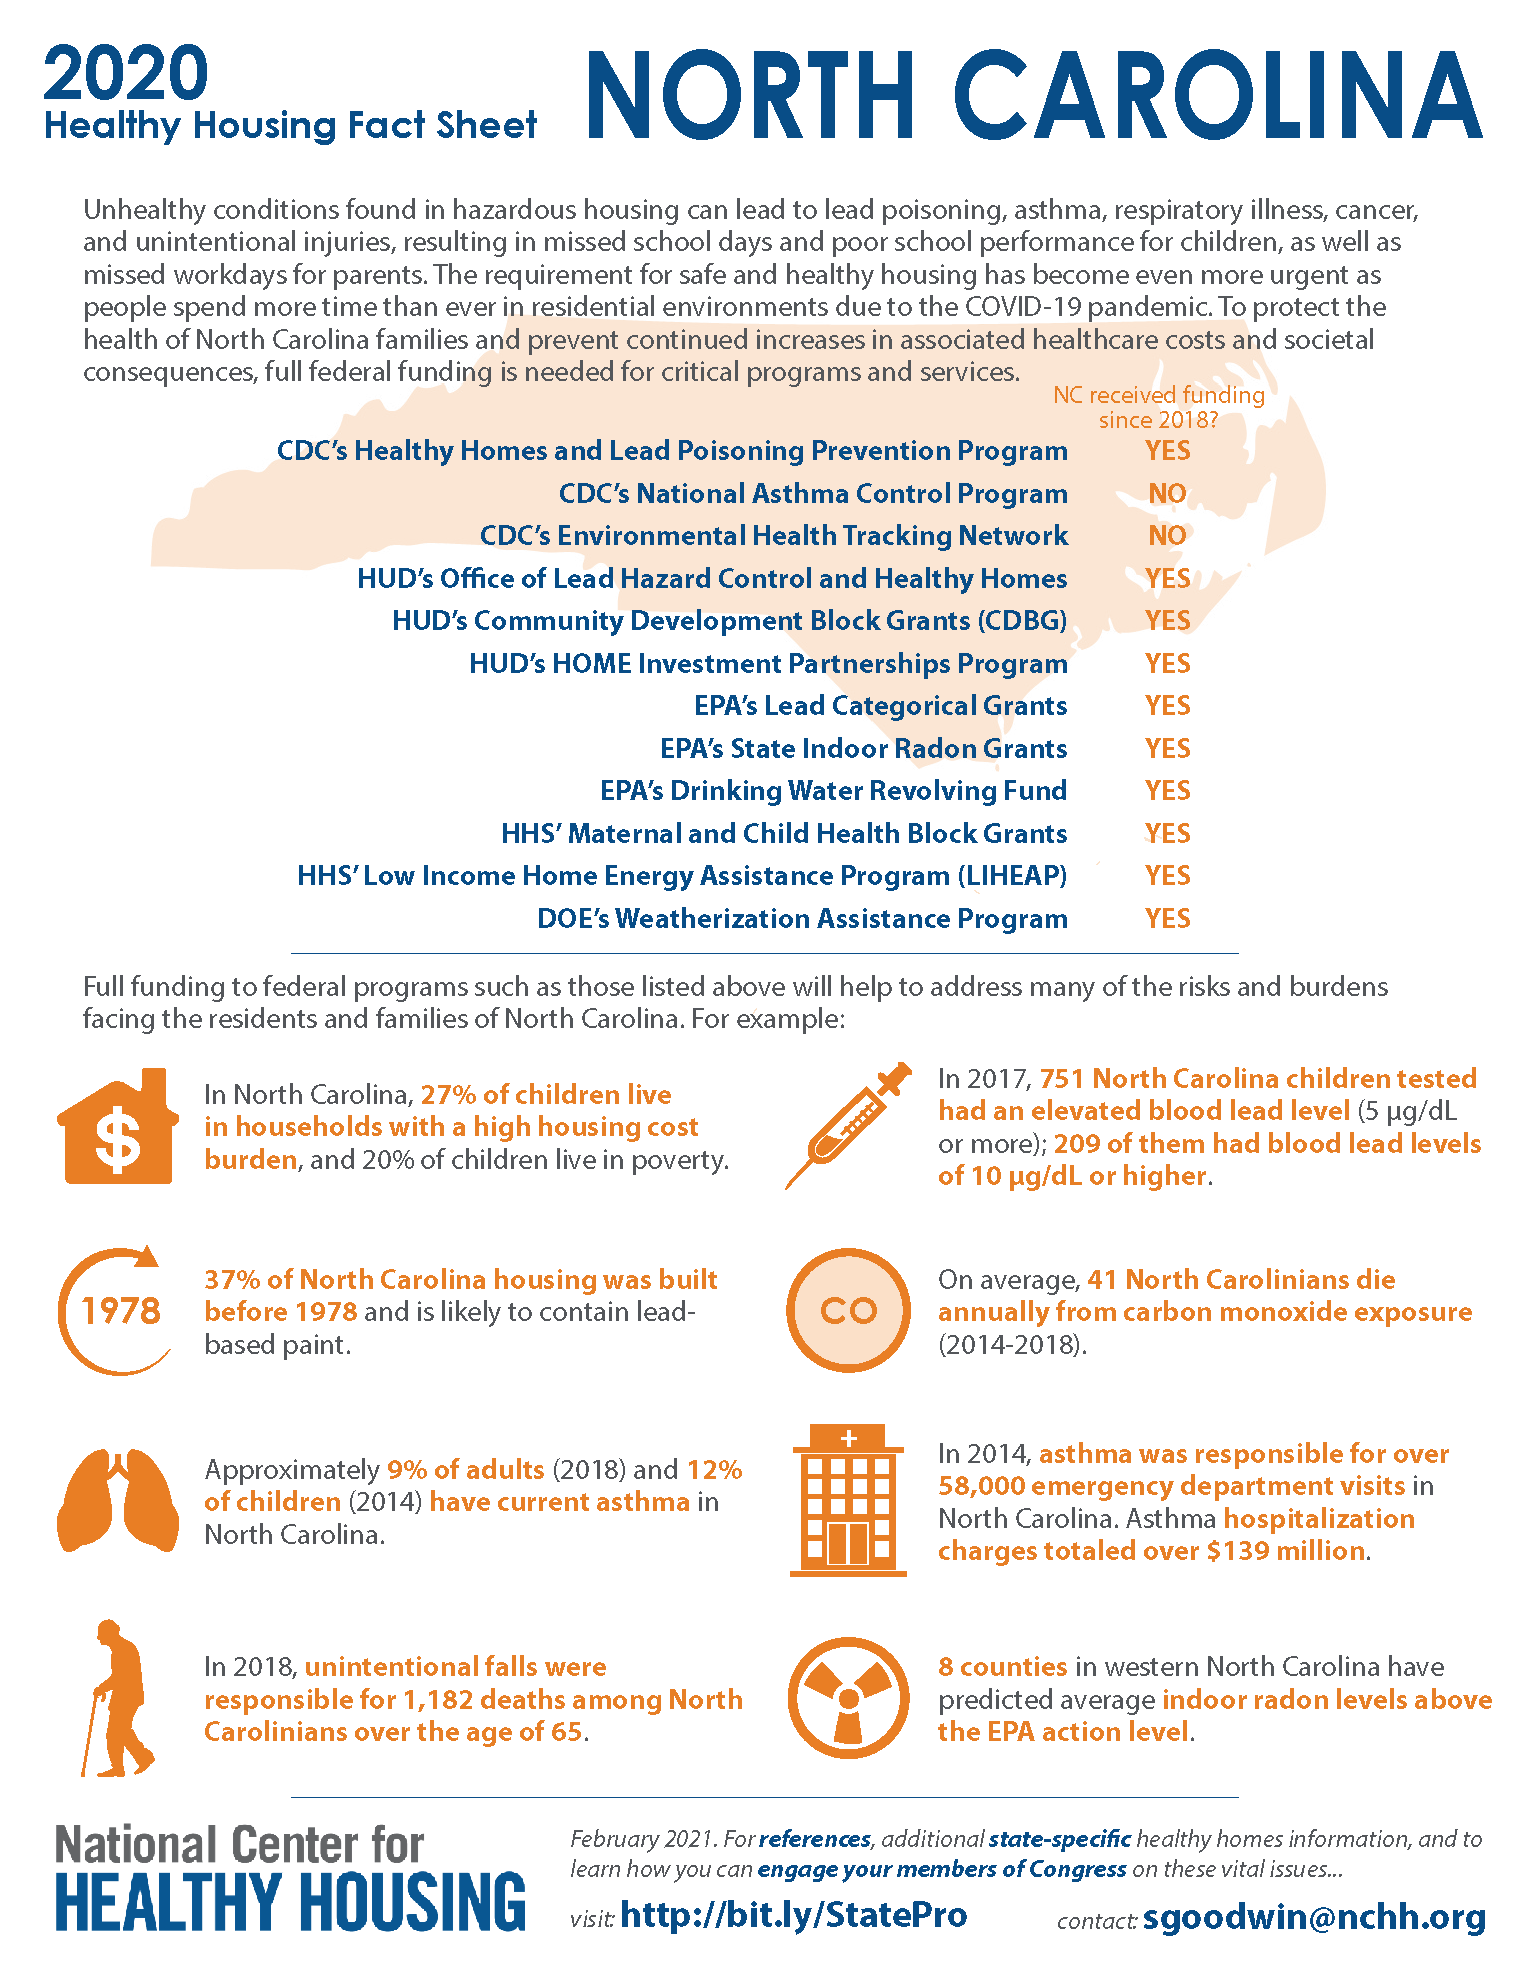 Healthy Housing Fact Sheet - North Carolina 2020